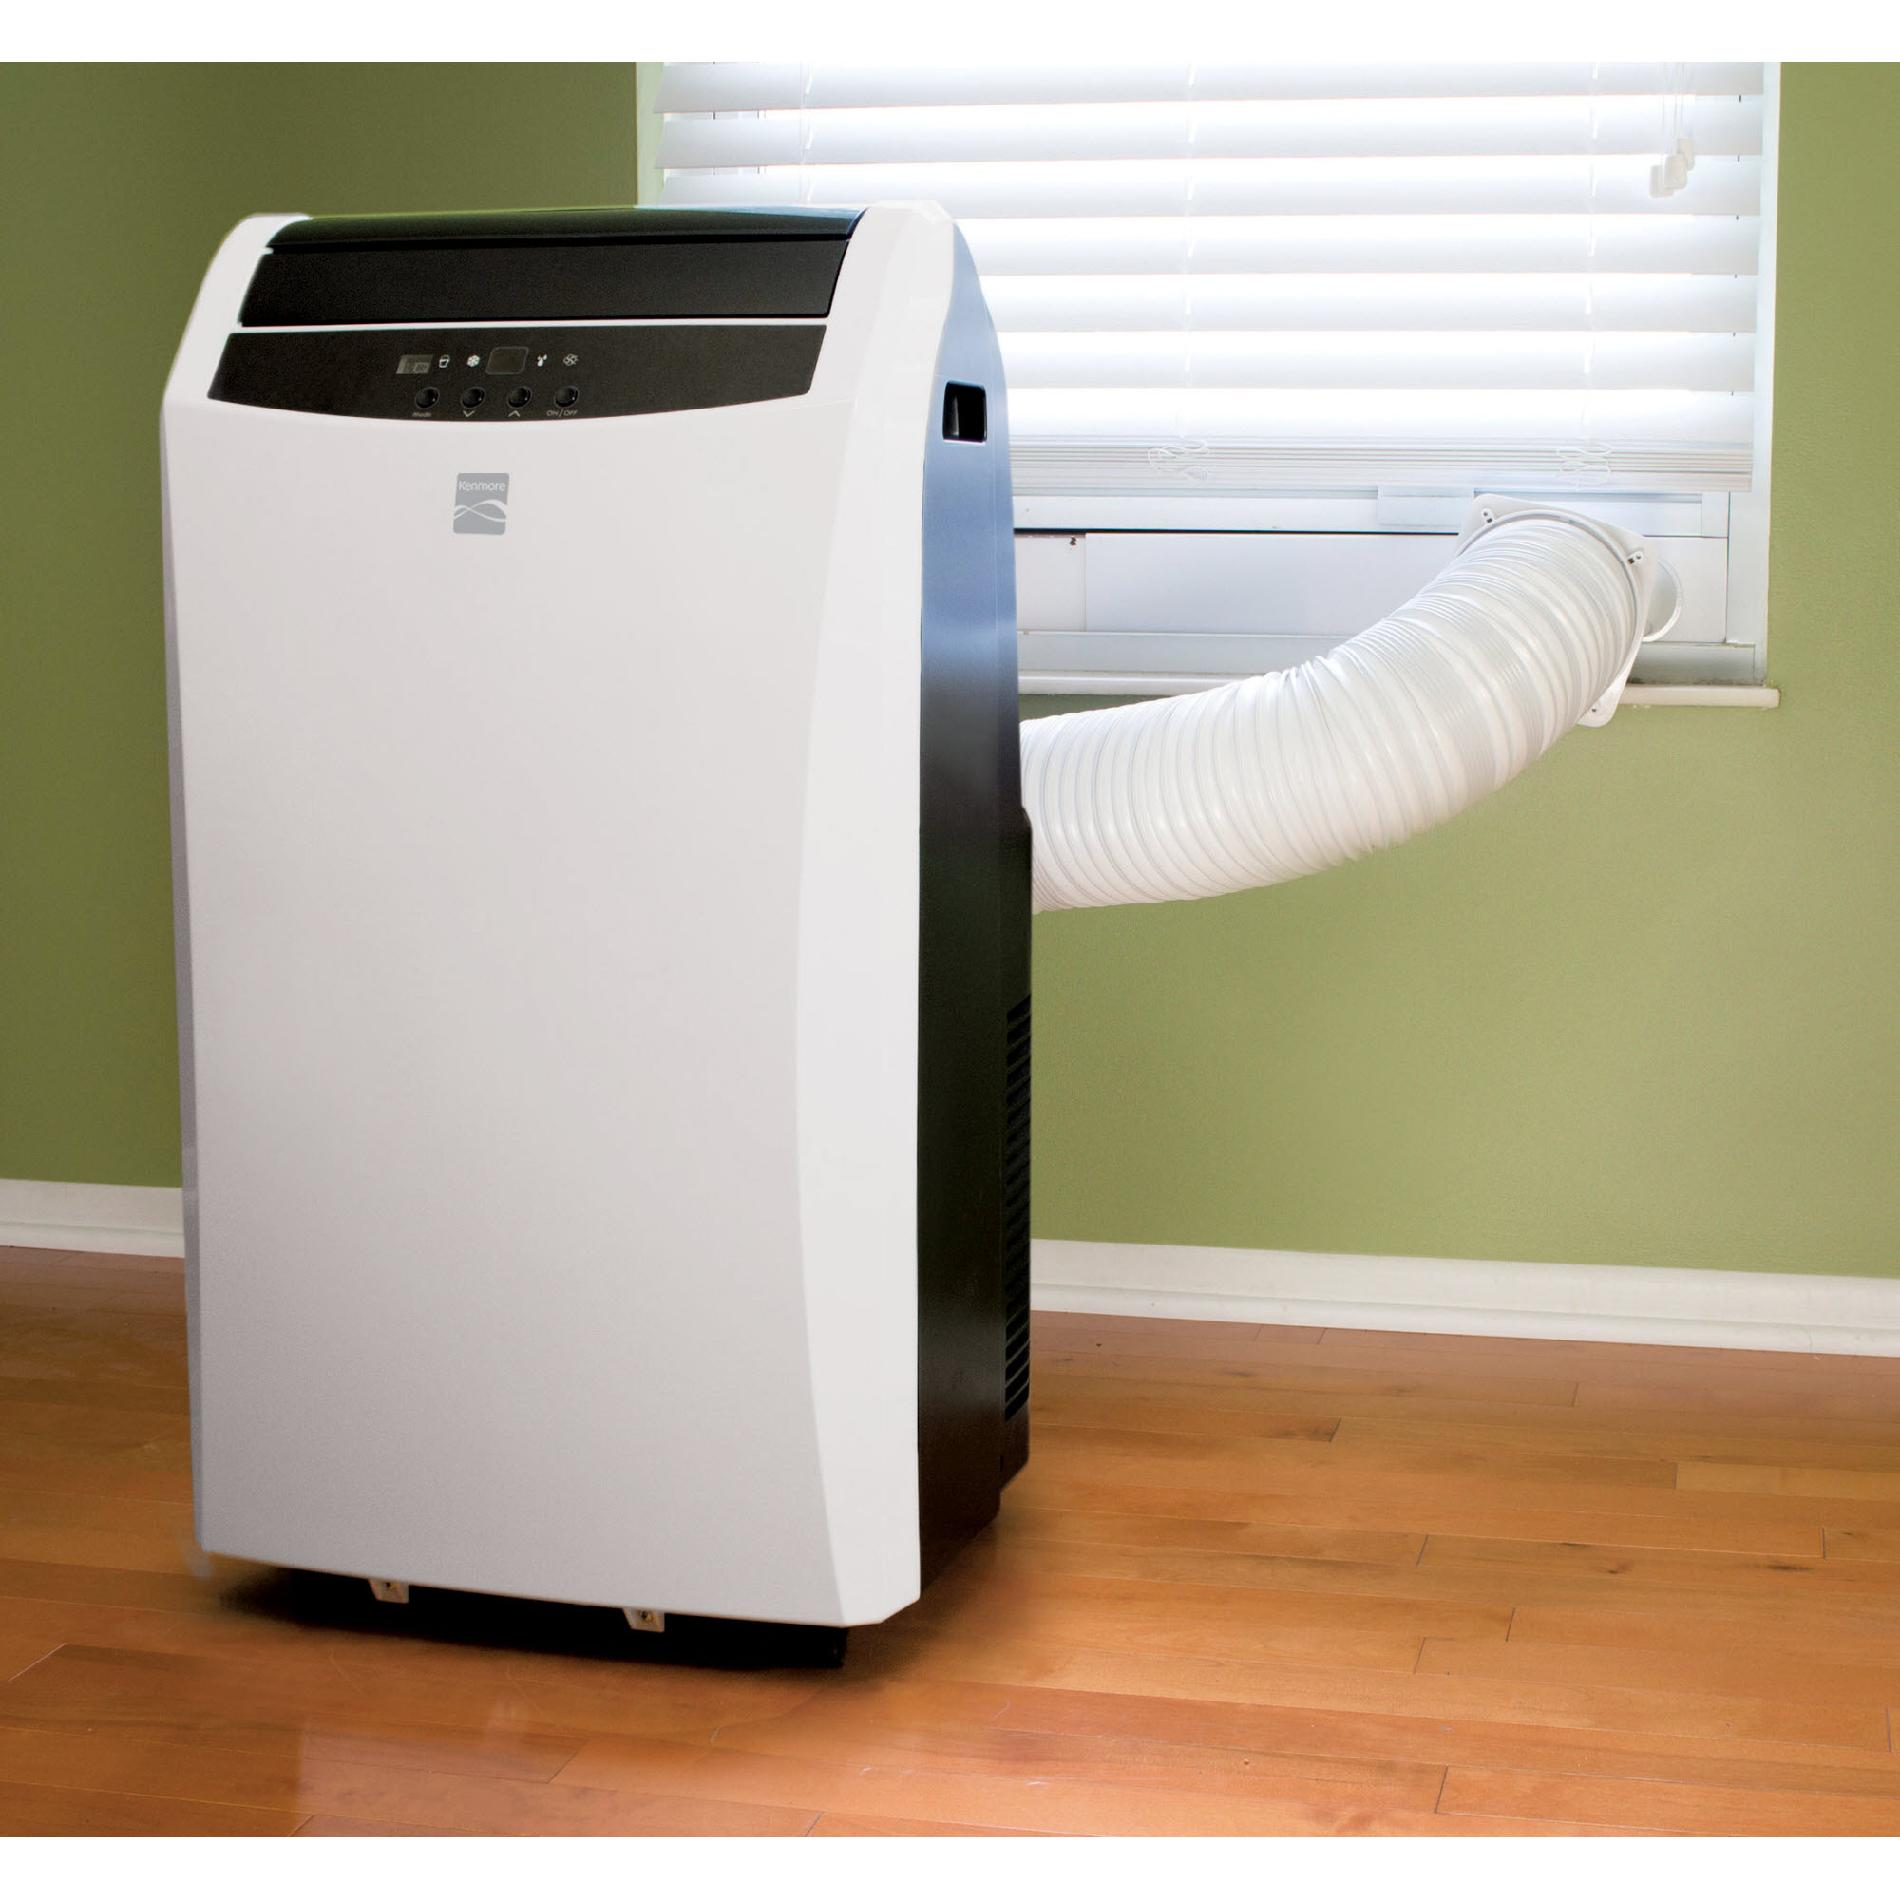 Kenmore Portable Air Conditioner 12,000 BTU